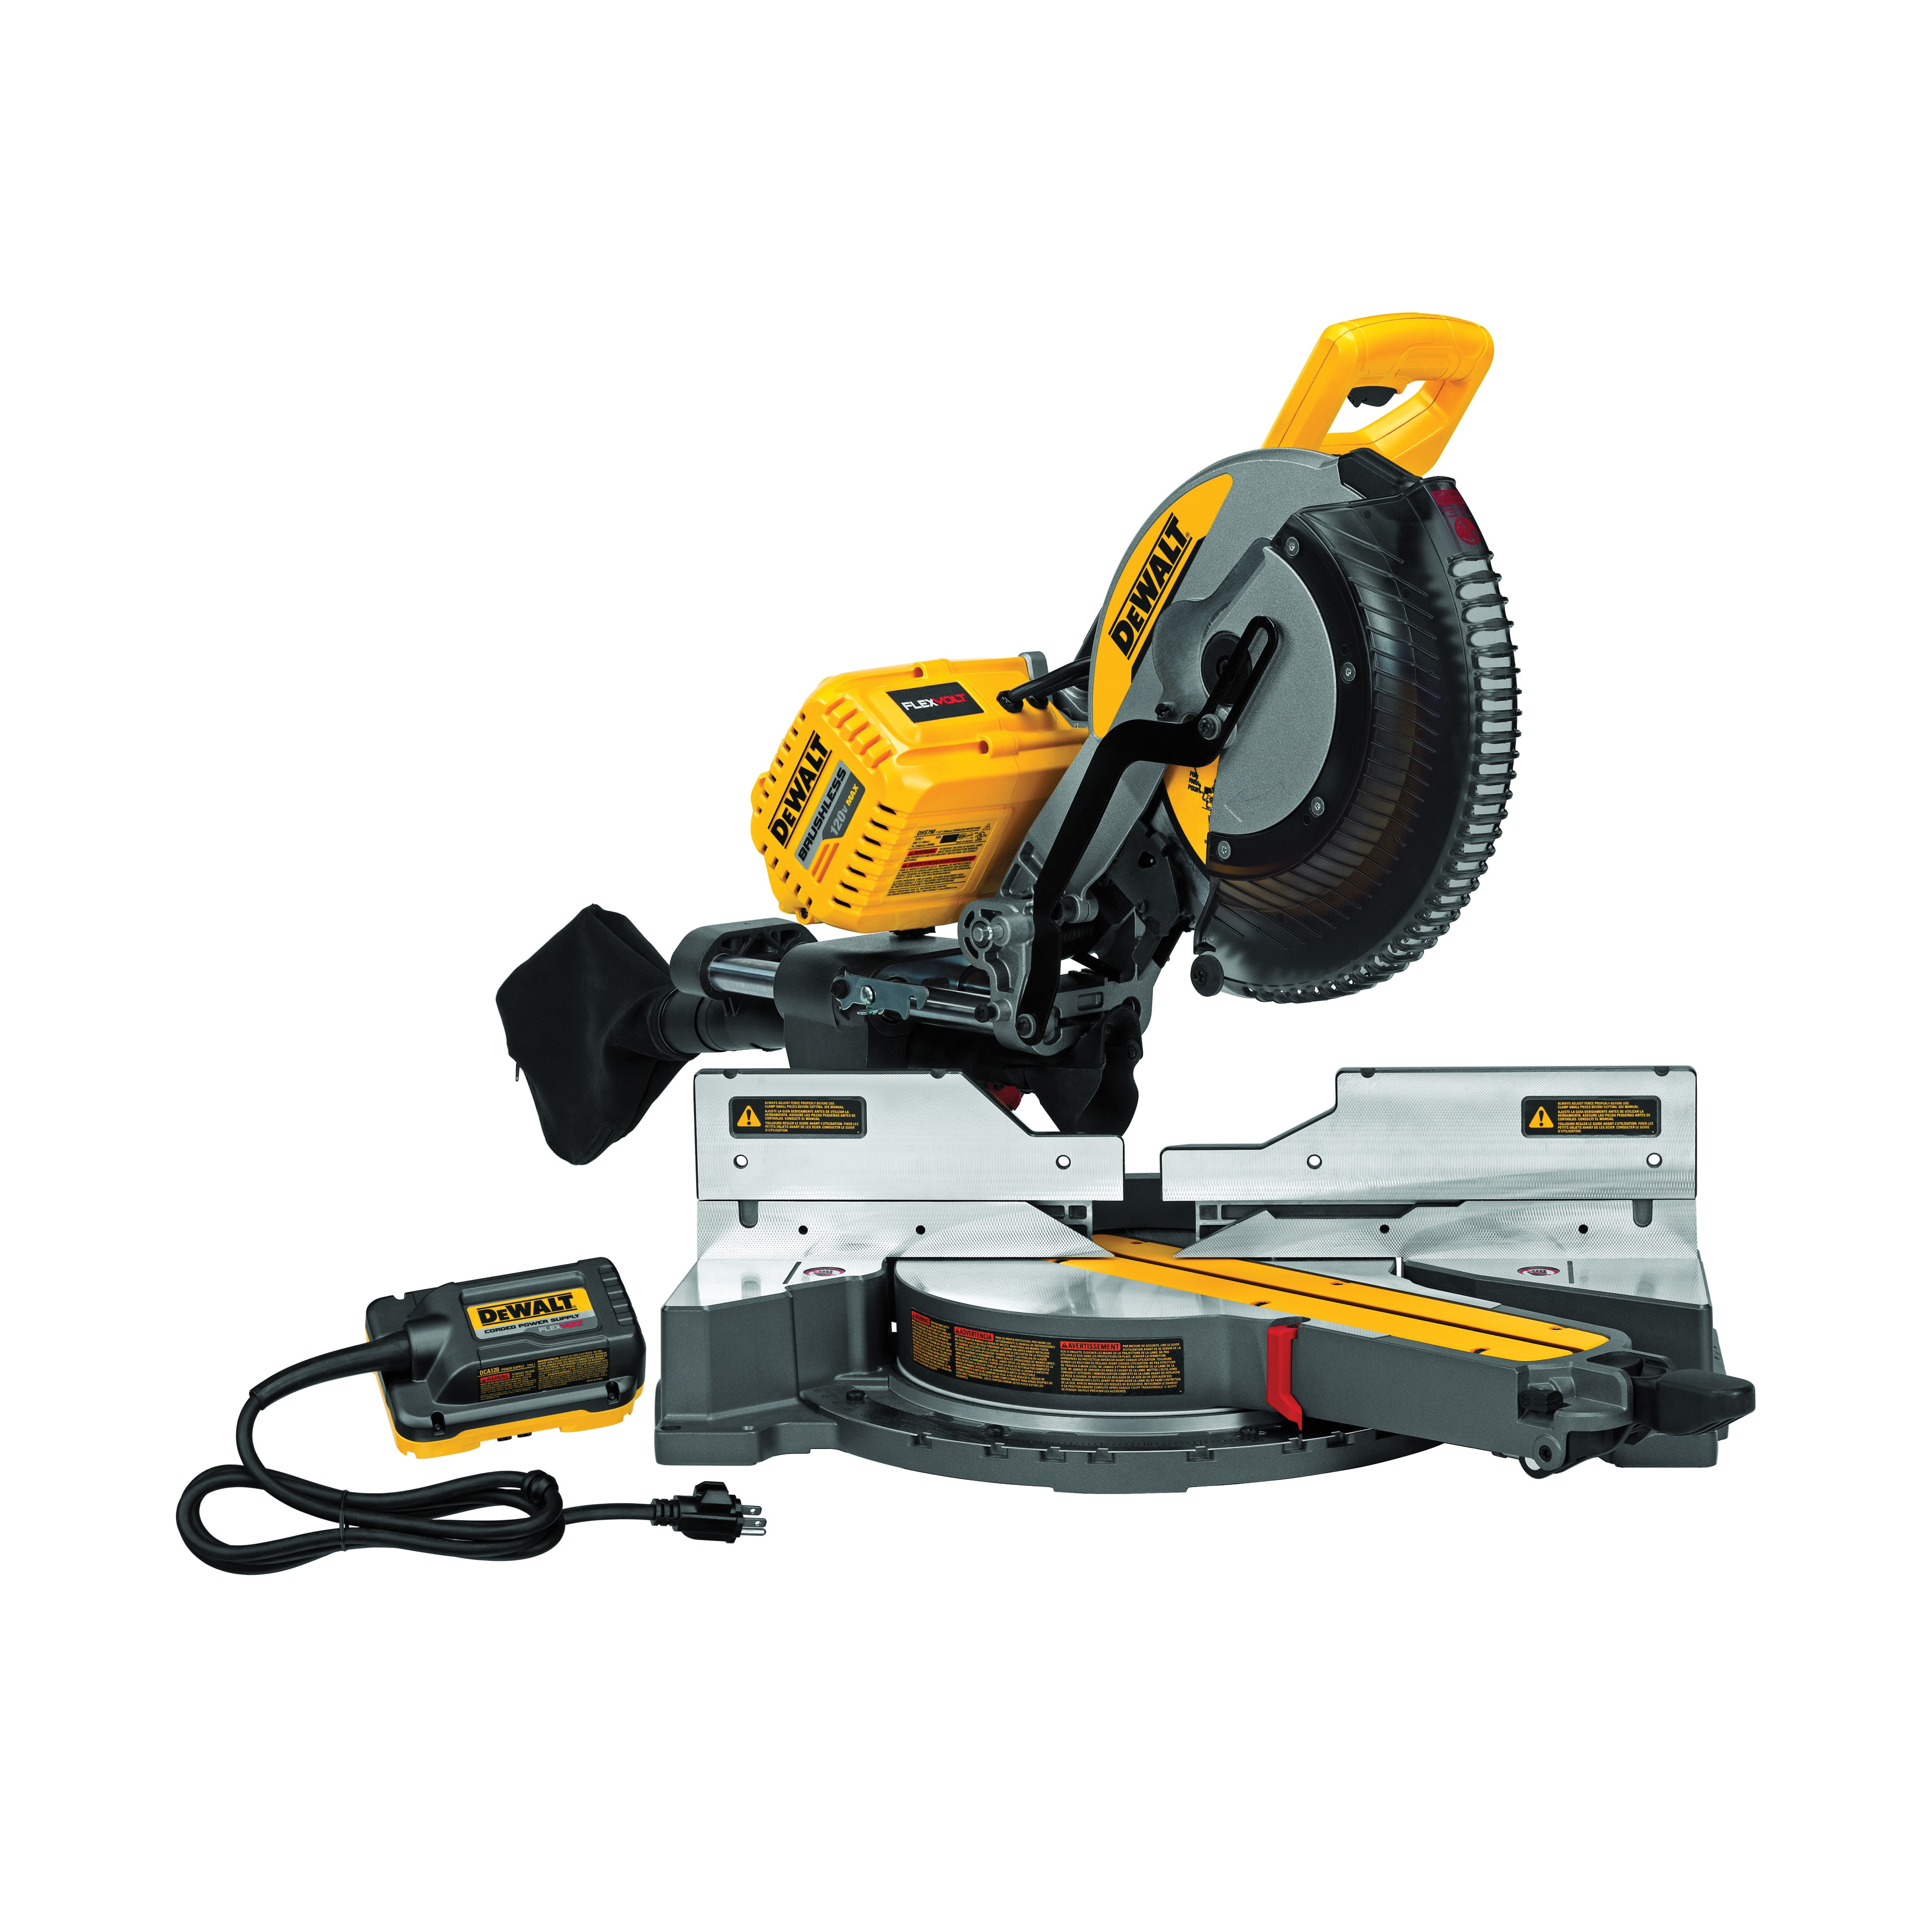 DeWALT® 120V MAX* FLEXVOLT™ DHS790AB Cordless Double Bevel Compound Miter Saw With Adapter, 12 in Dia Blade, 5/8, 1 in Arbor/Shank, 16 in Cutting, 45 deg Miter, 0 to 49 deg Bevel